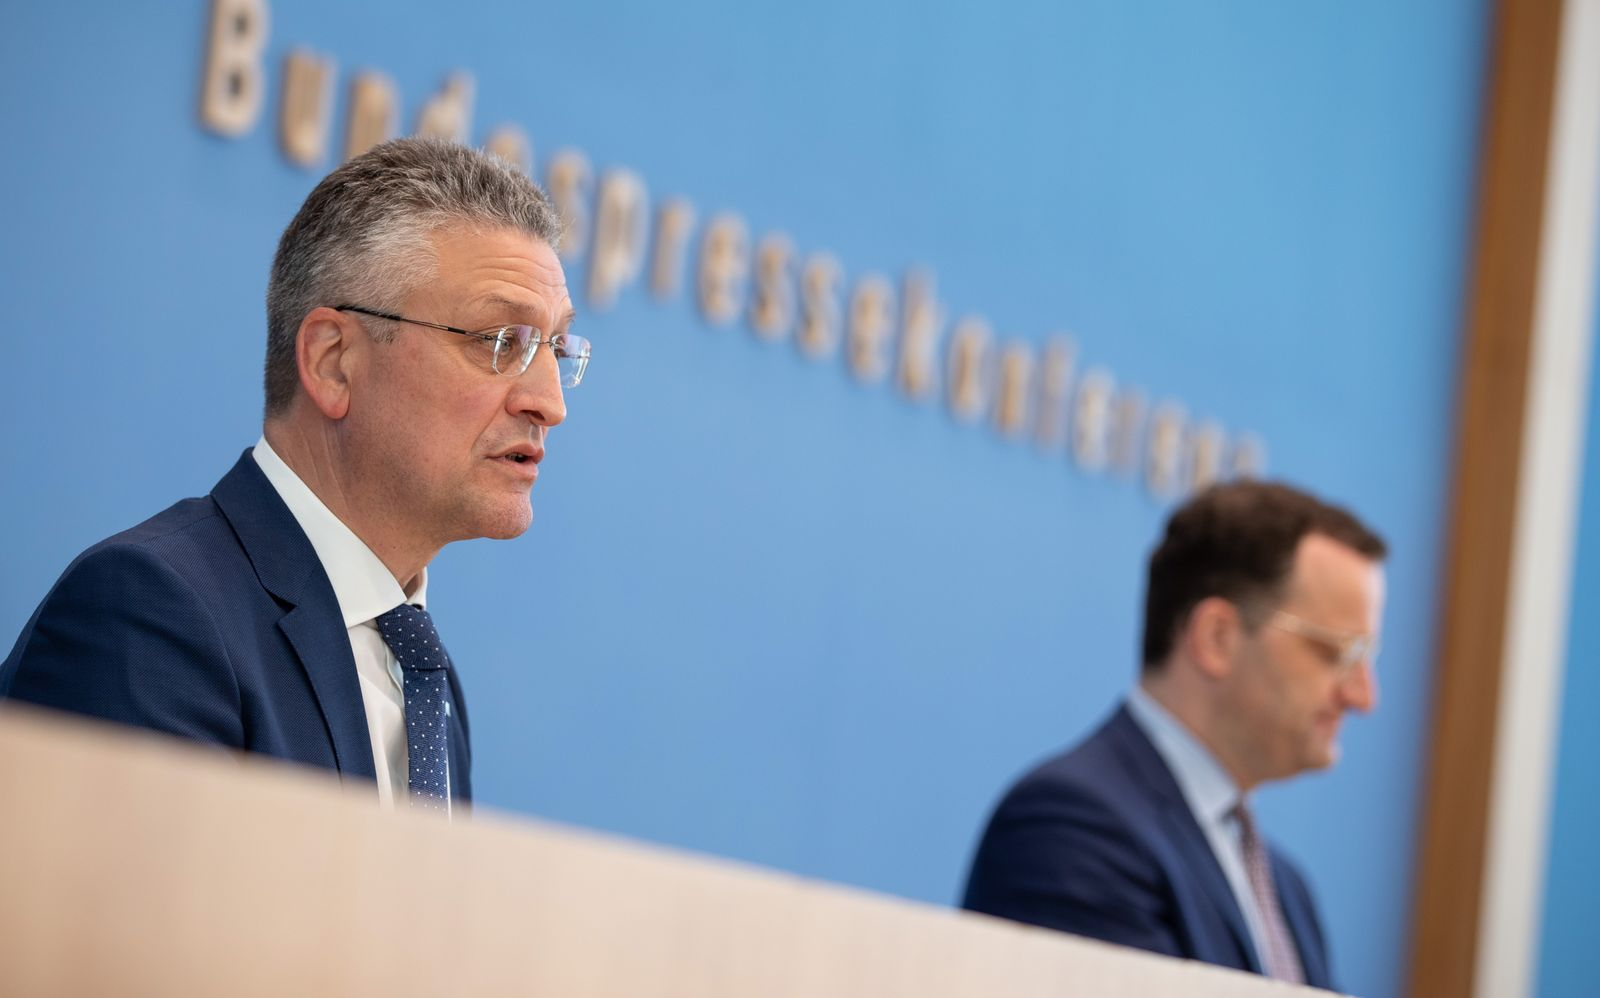 German Federal Government press conference on the coronavirus pandemic situation